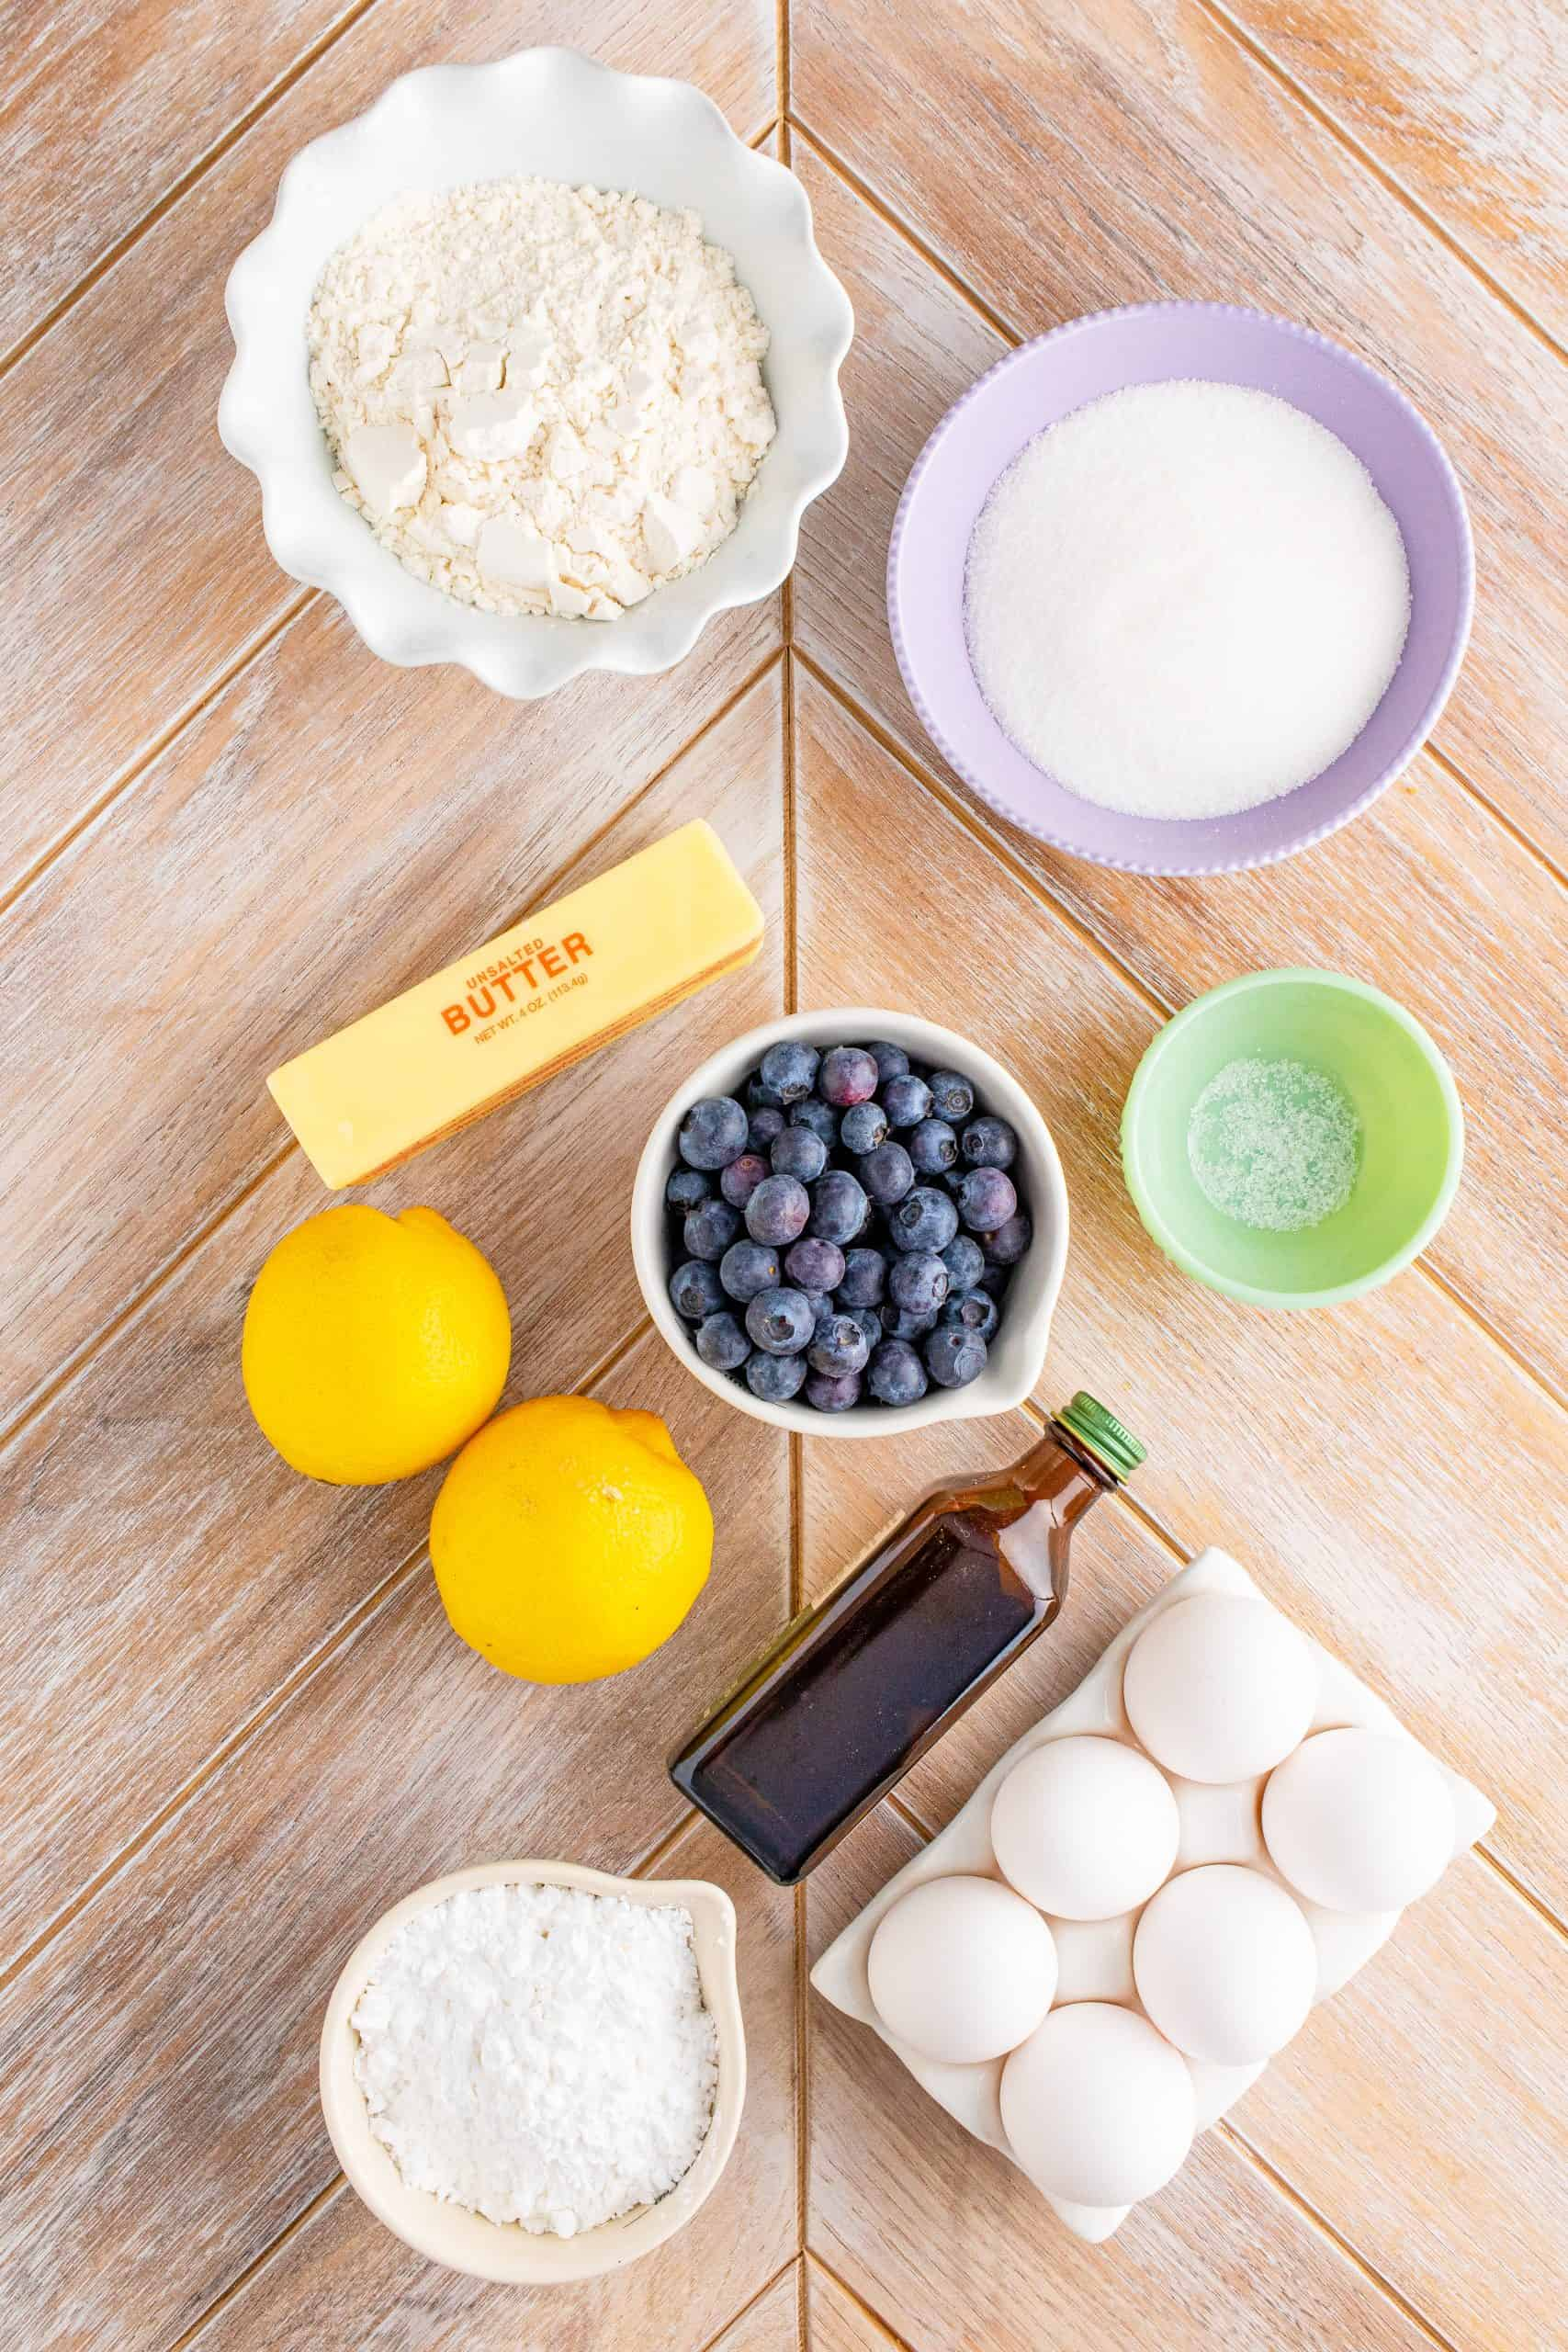 Ingredients needed: unsalted butter, granulated sugar, all-purpose flour, eggs, lemon zest, lemon juice, vanilla extract, blueberries and powdered sugar.